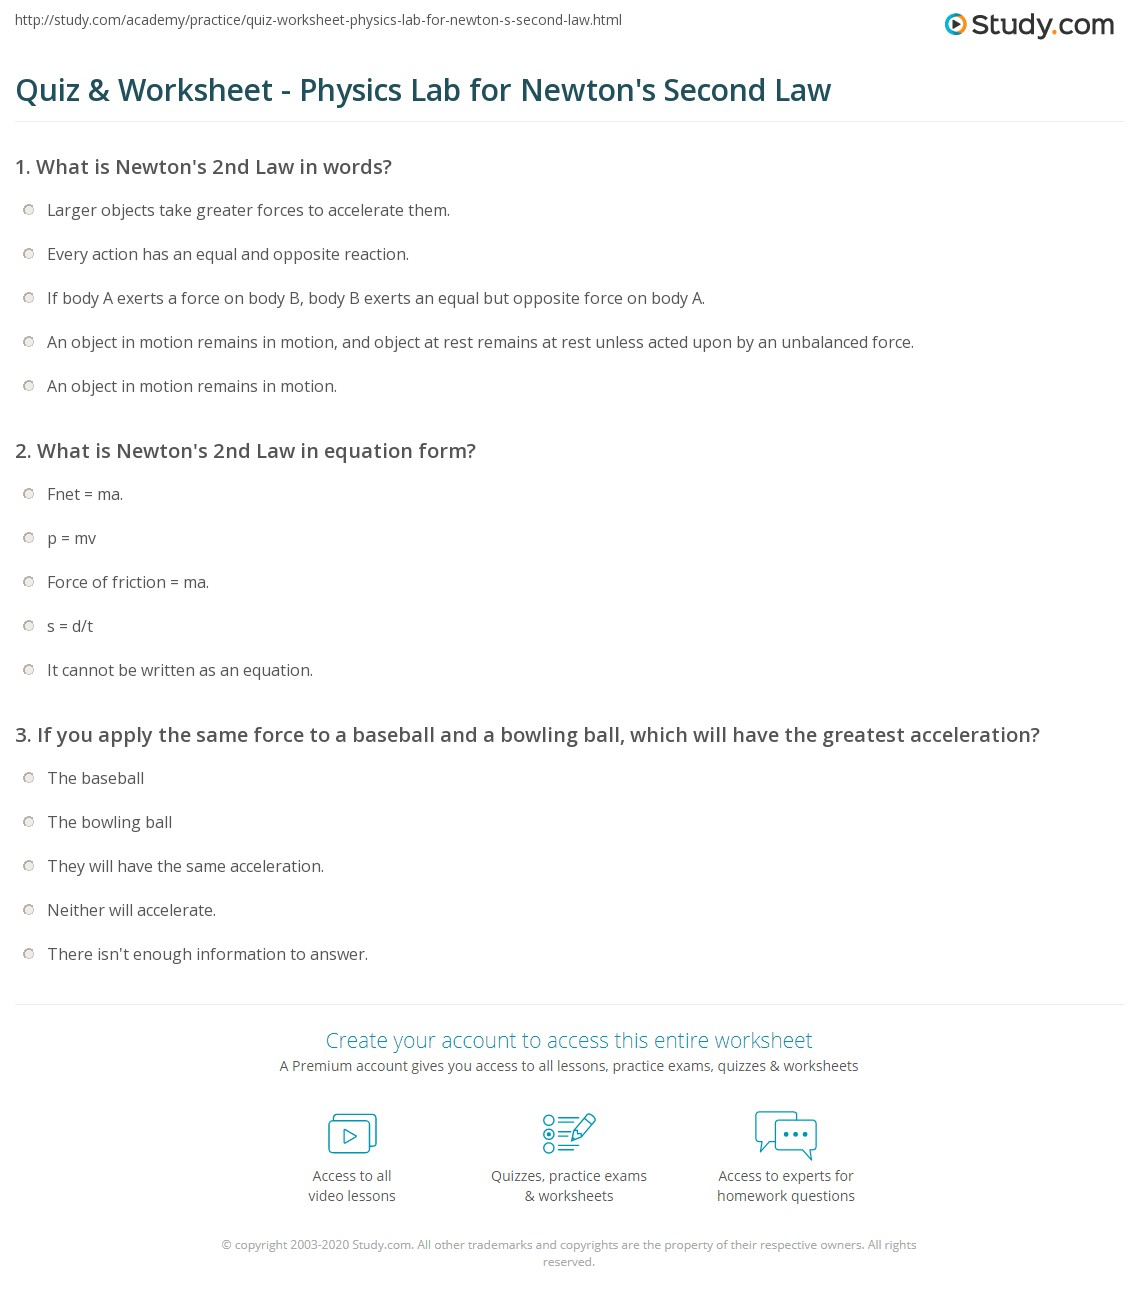 Quiz Worksheet Physics Lab For Newton 39 S Second Law